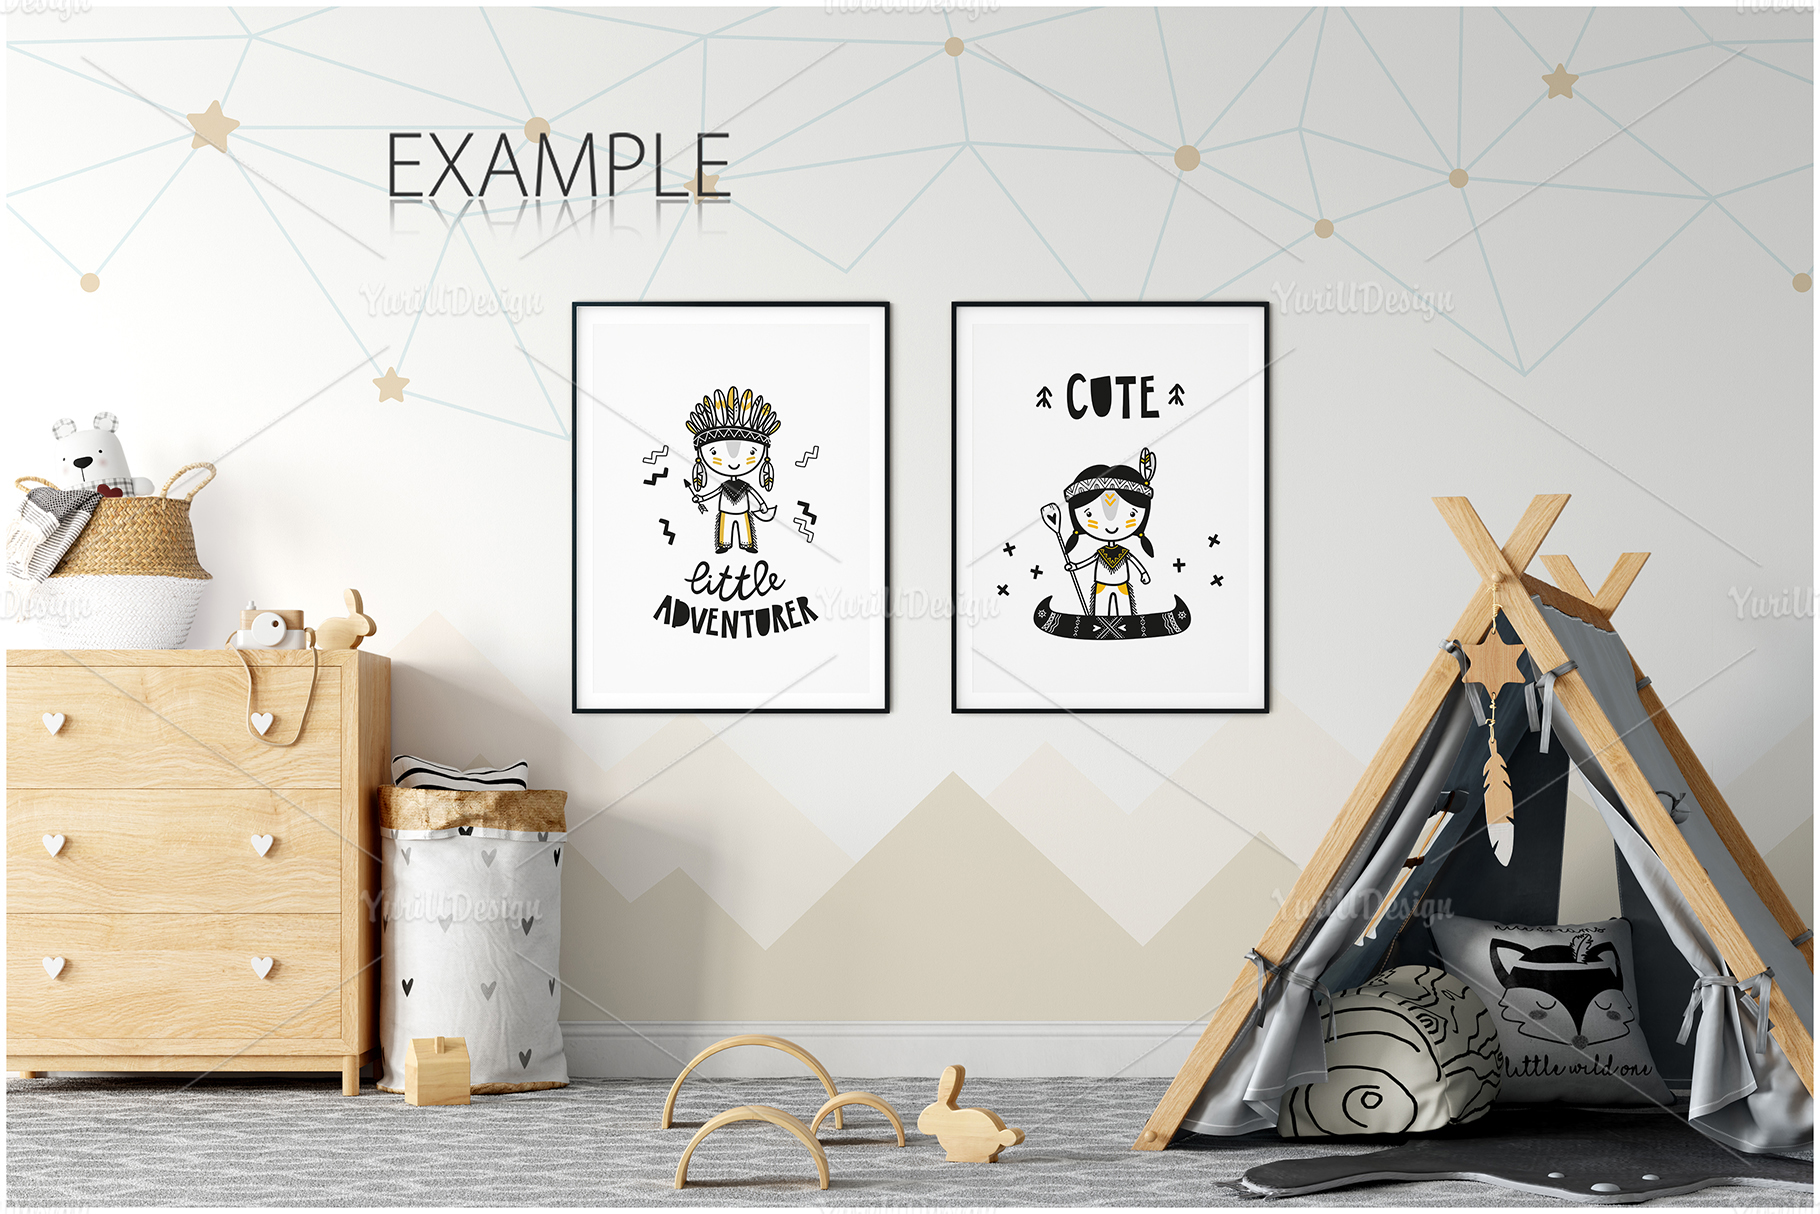 Kids Frames & Wall Mockup Bundle - 5 example image 8